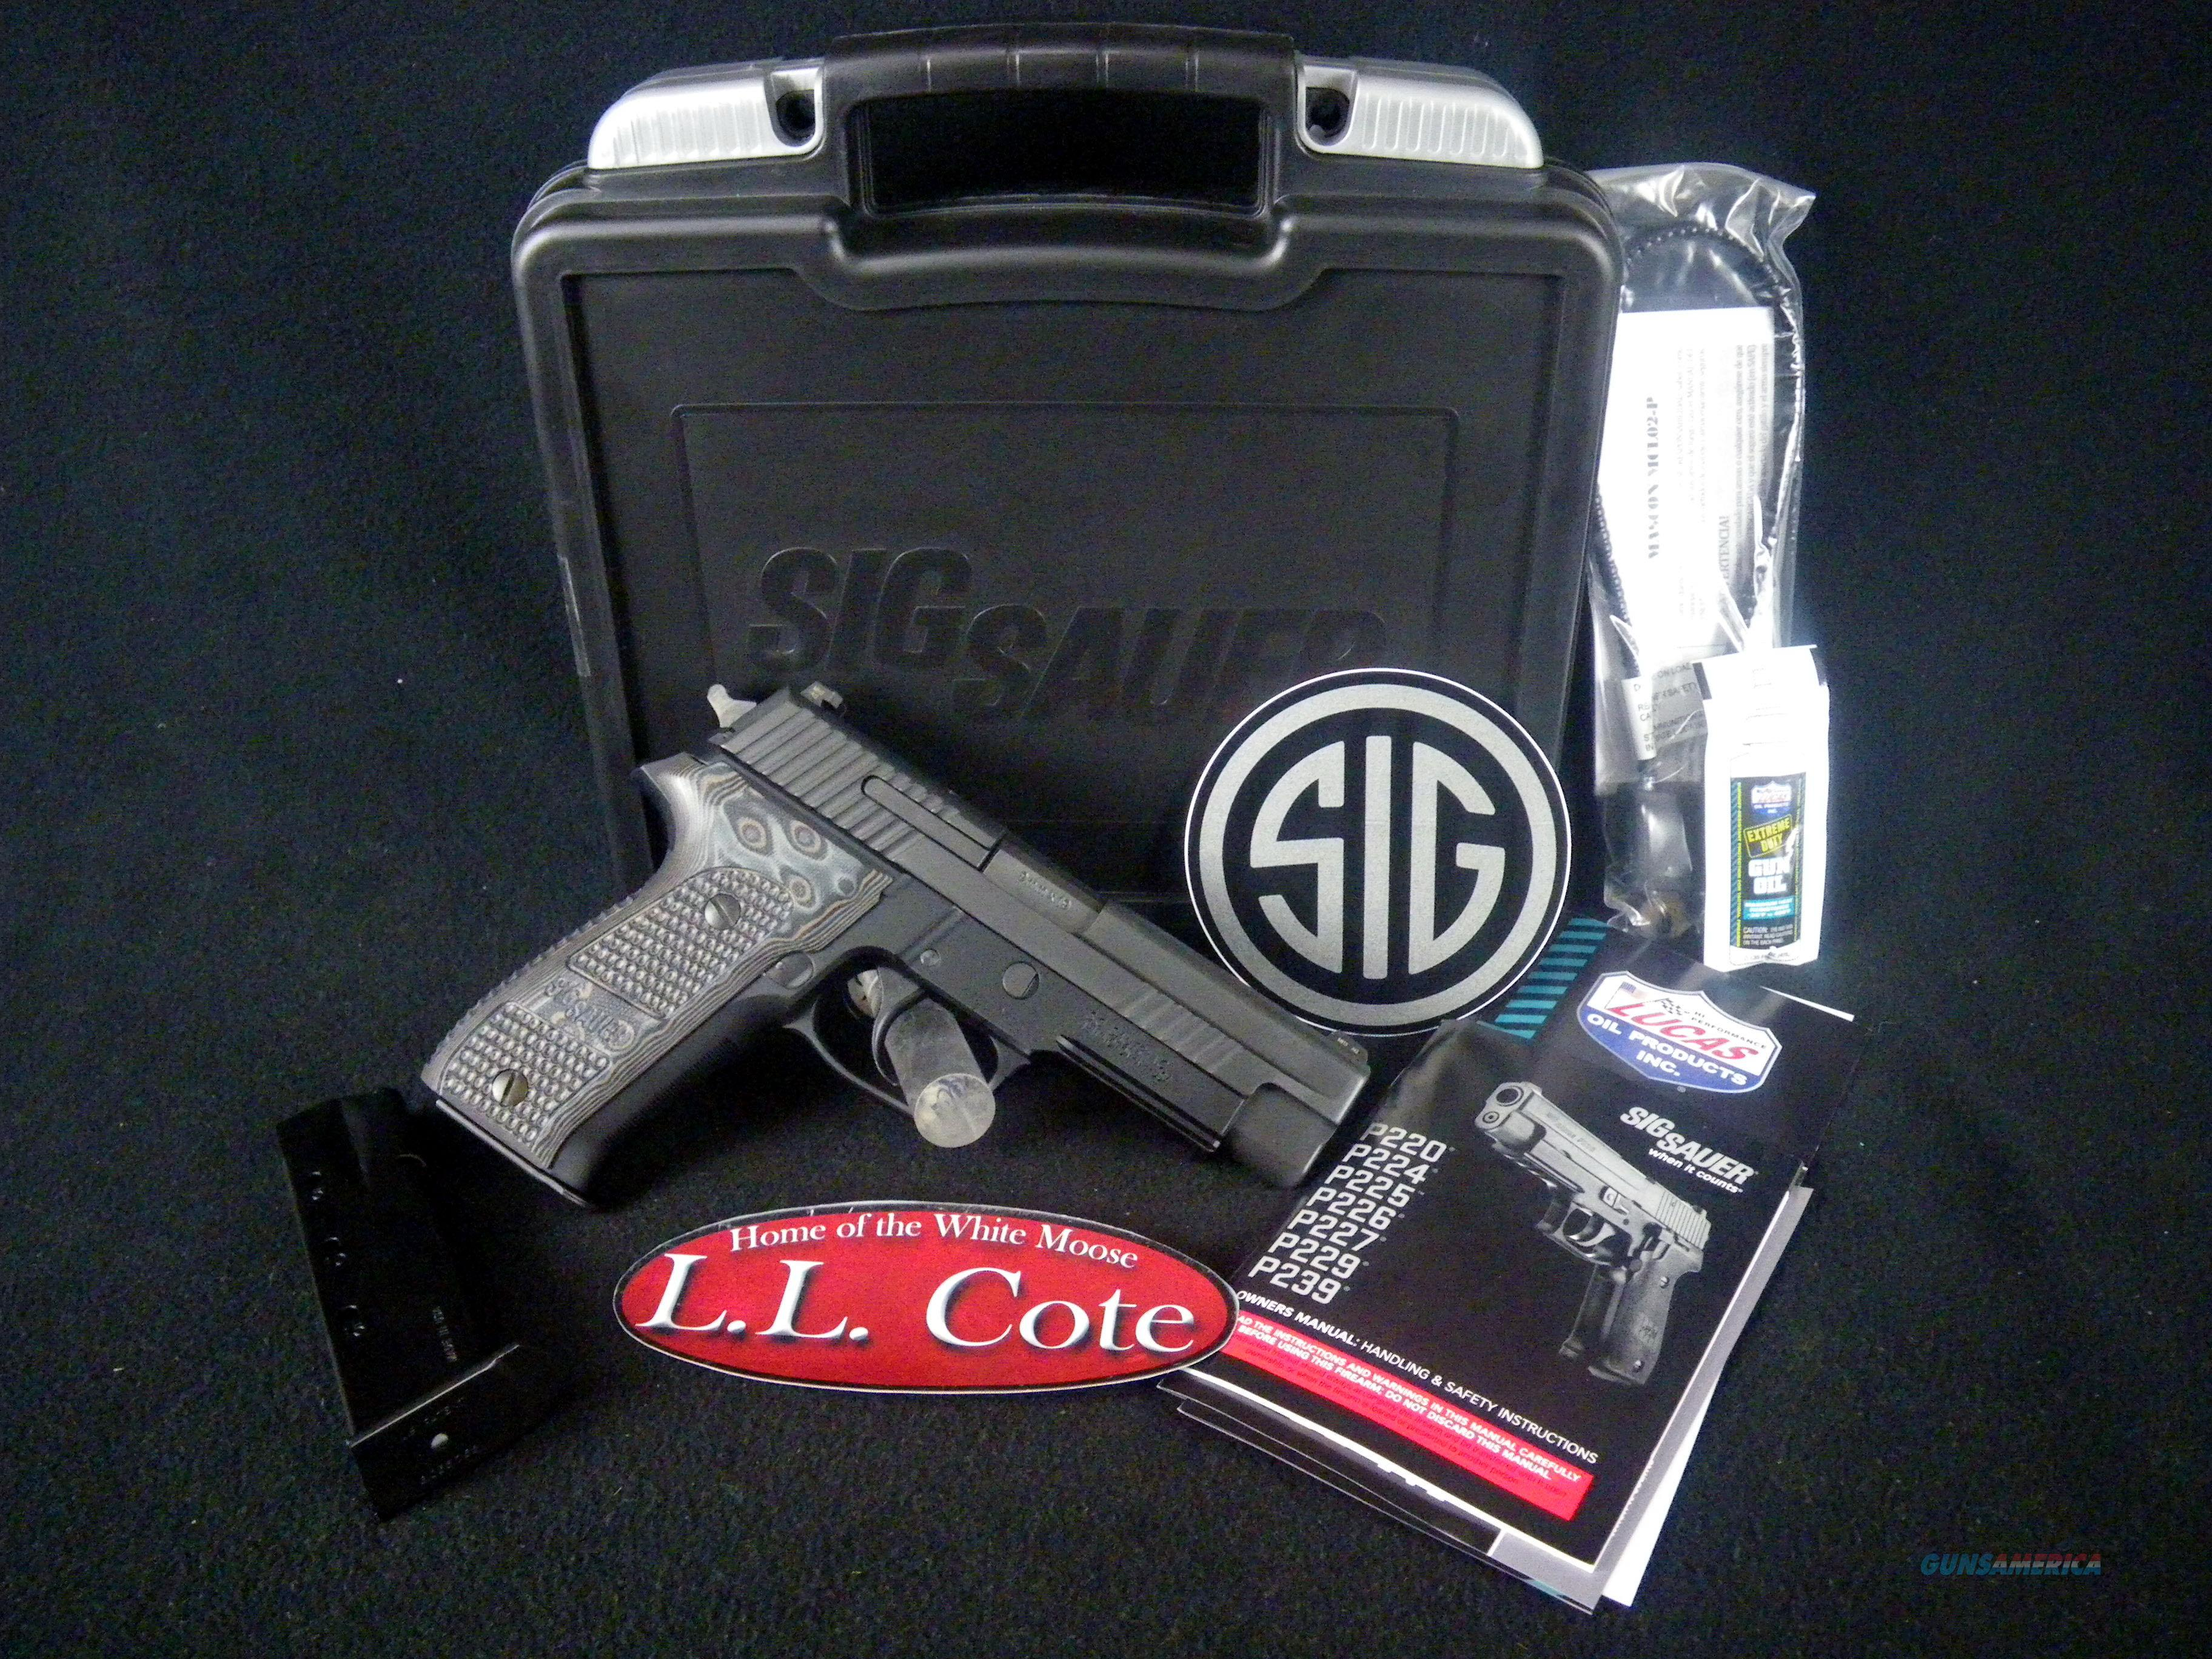 """Sig Sauer P226 Extreme G10 Grips 9mm 4.4"""" NEW E26R-9-XTM-BLKGRY  Guns > Pistols > Sig - Sauer/Sigarms Pistols > P226"""